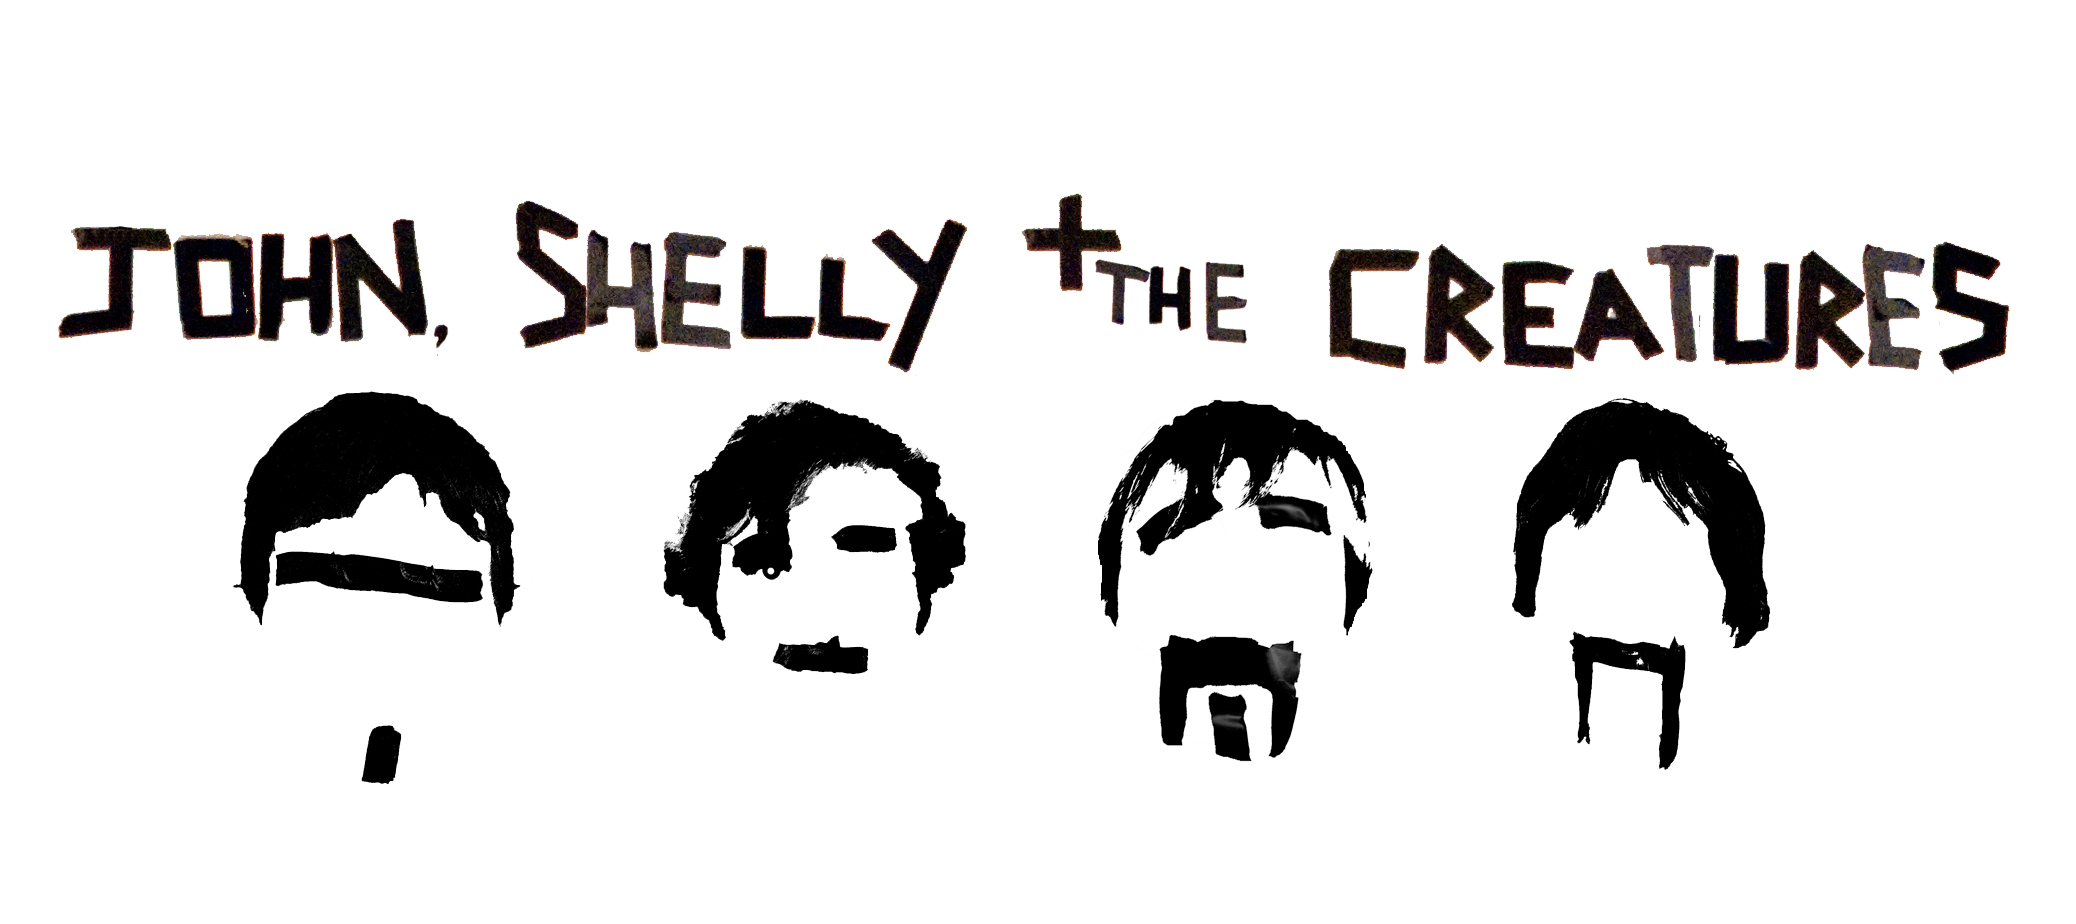 John, Shelly & The Creatures logo